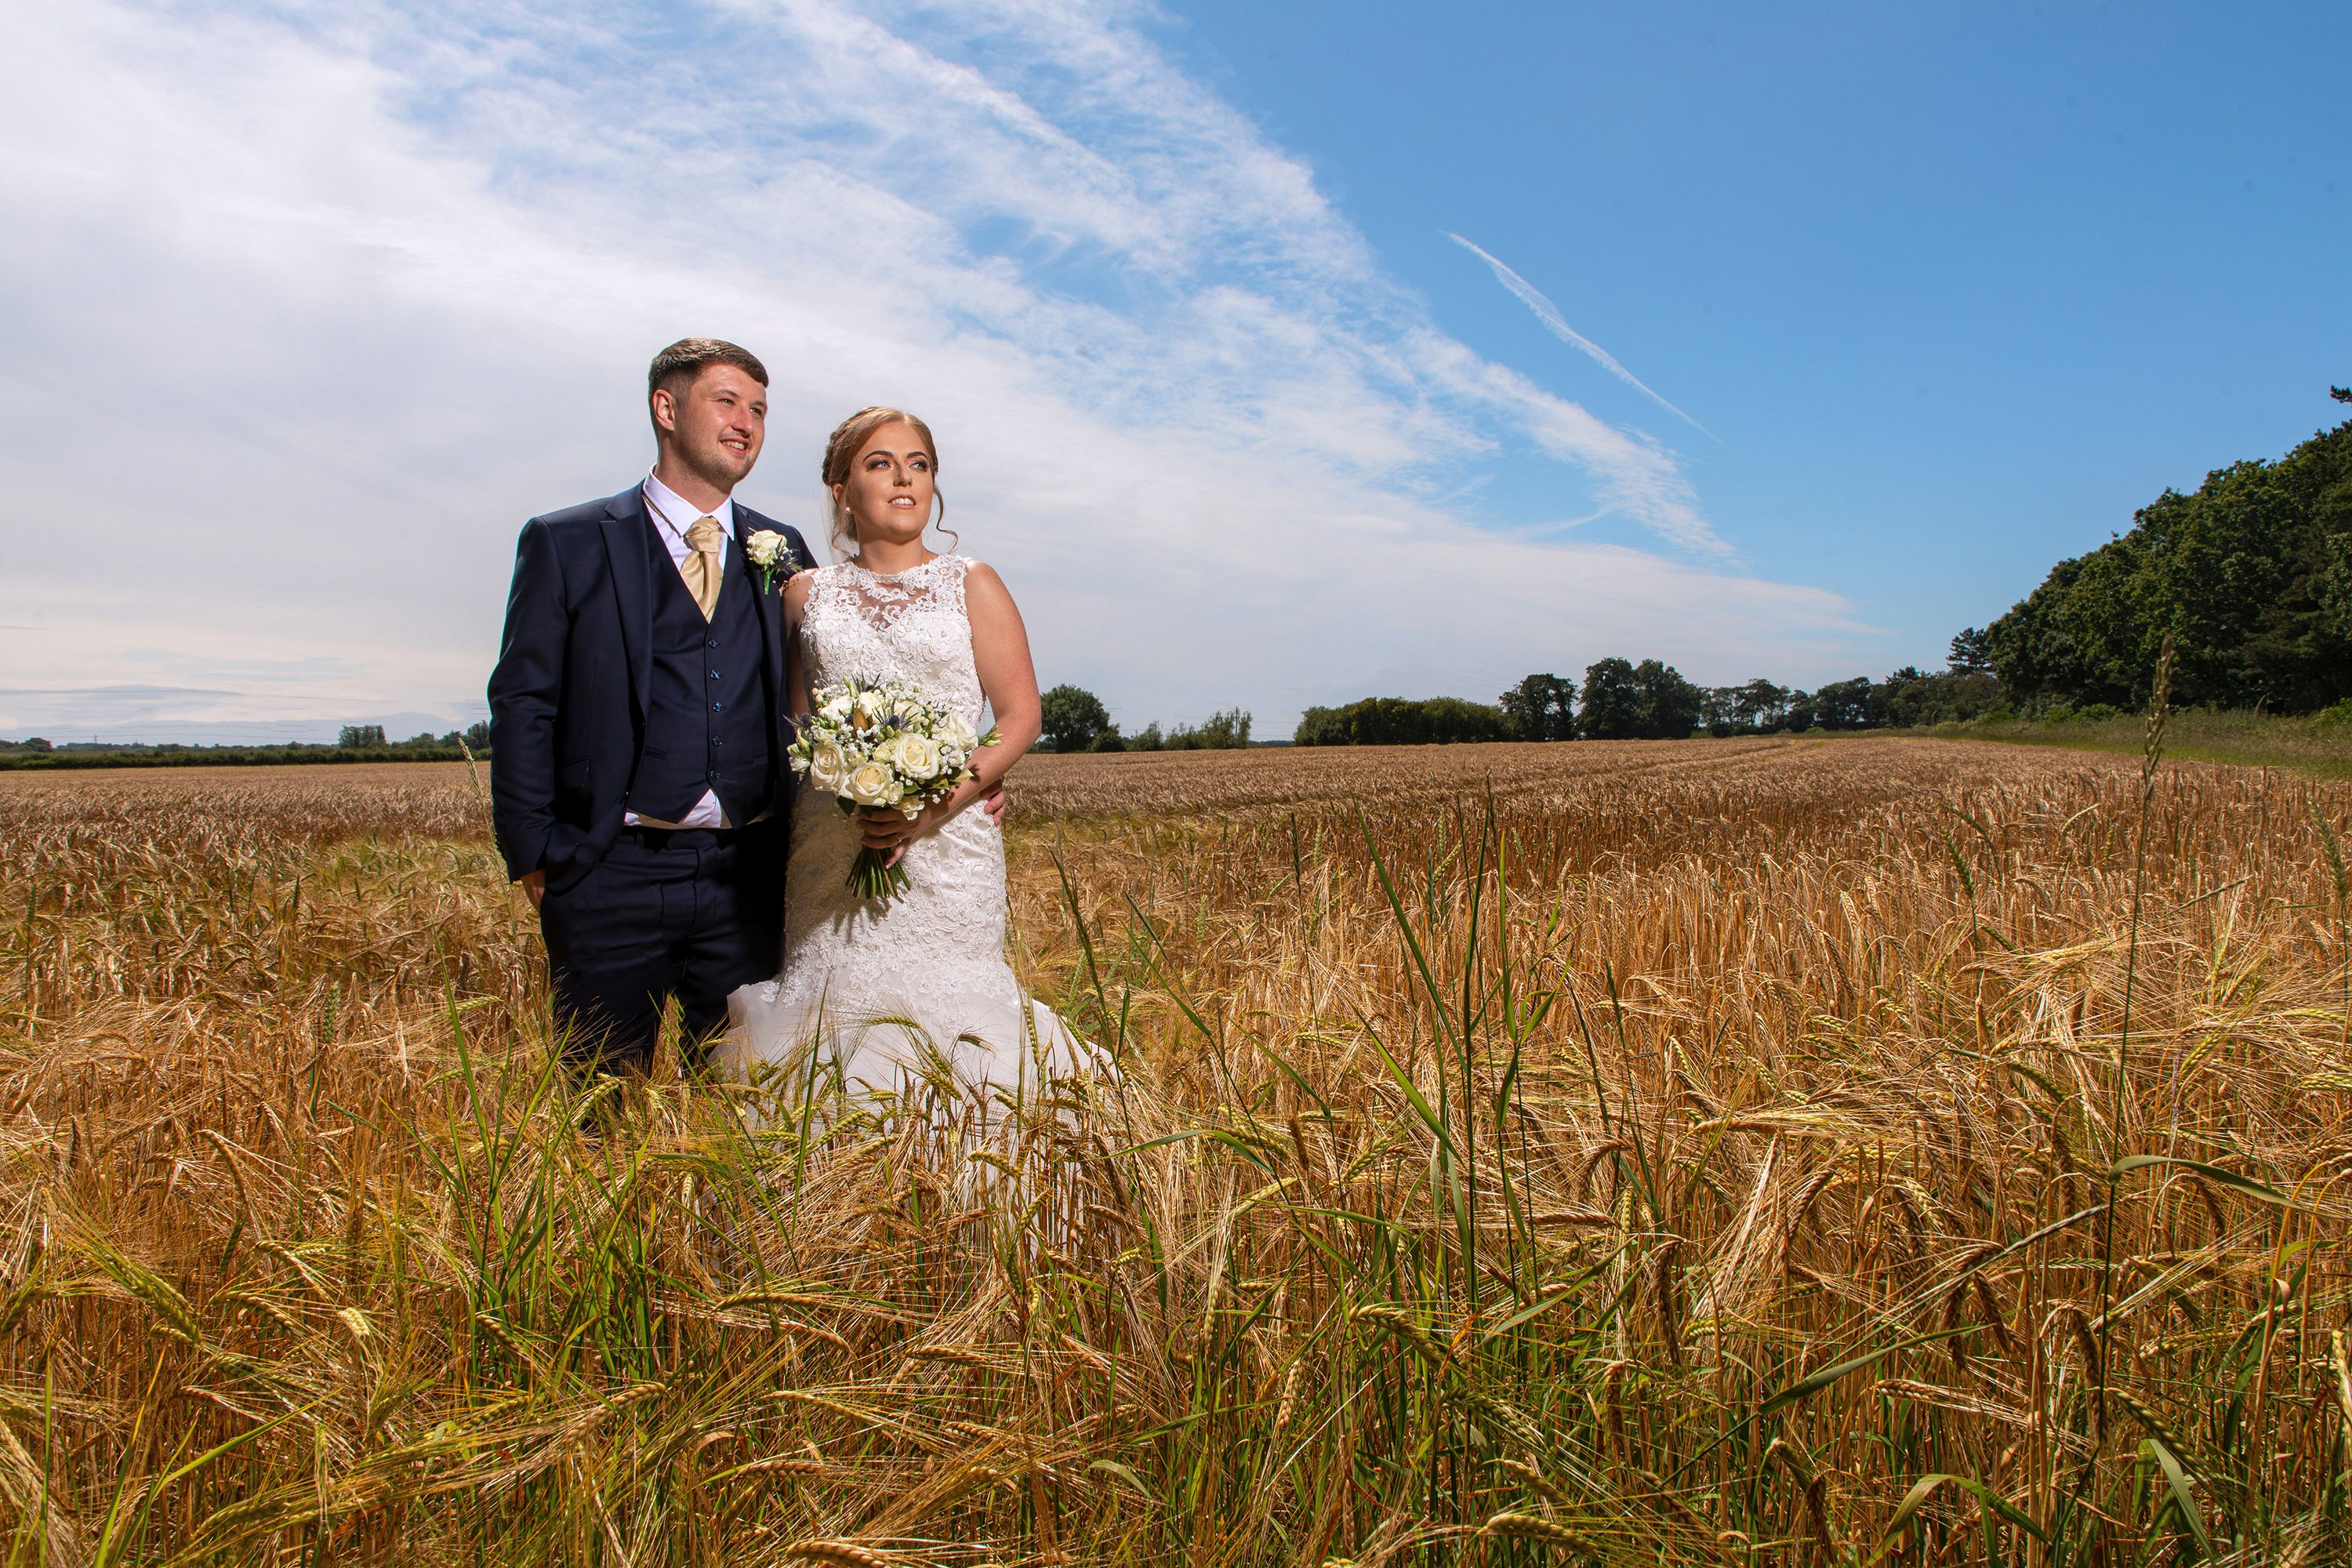 the bride and groom in a wheat field